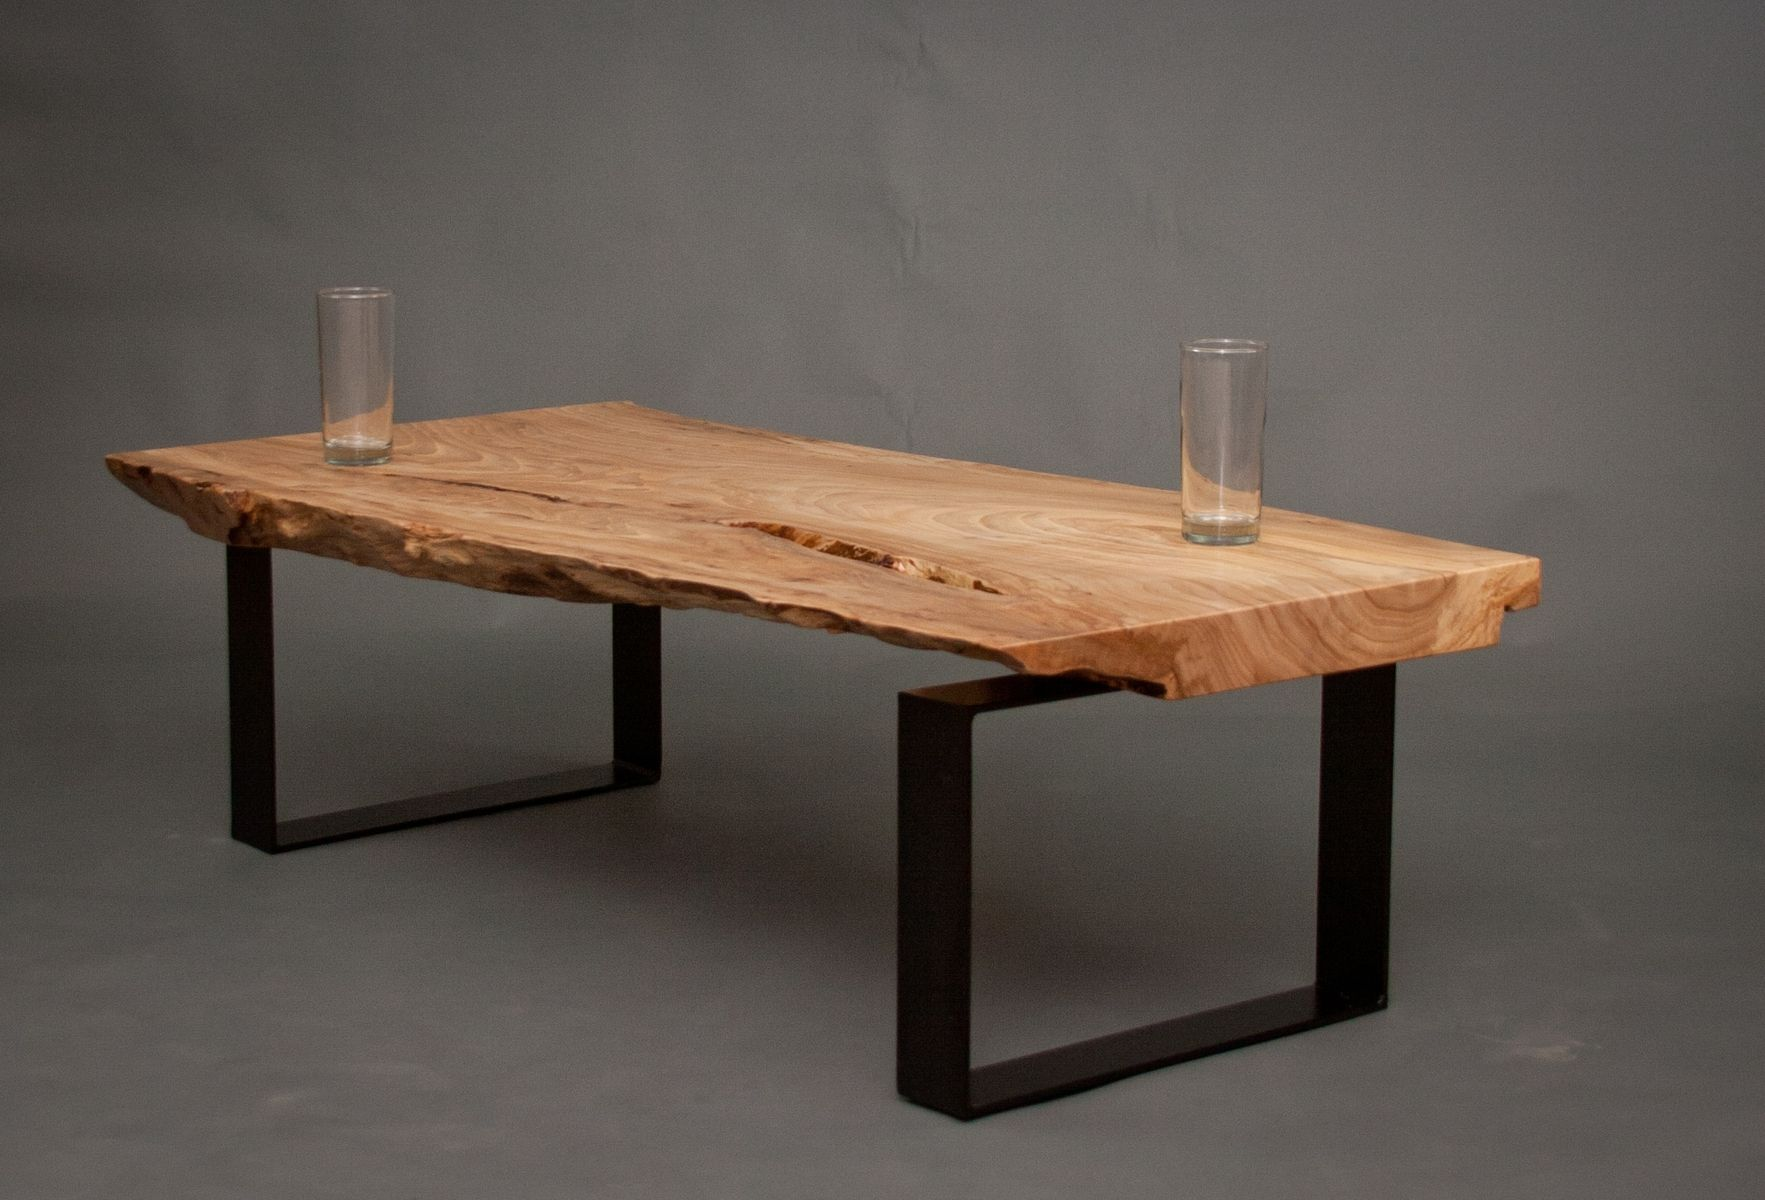 Hand Made Ellington Reclaimed Elm Wood Coffee Table by ELPIS